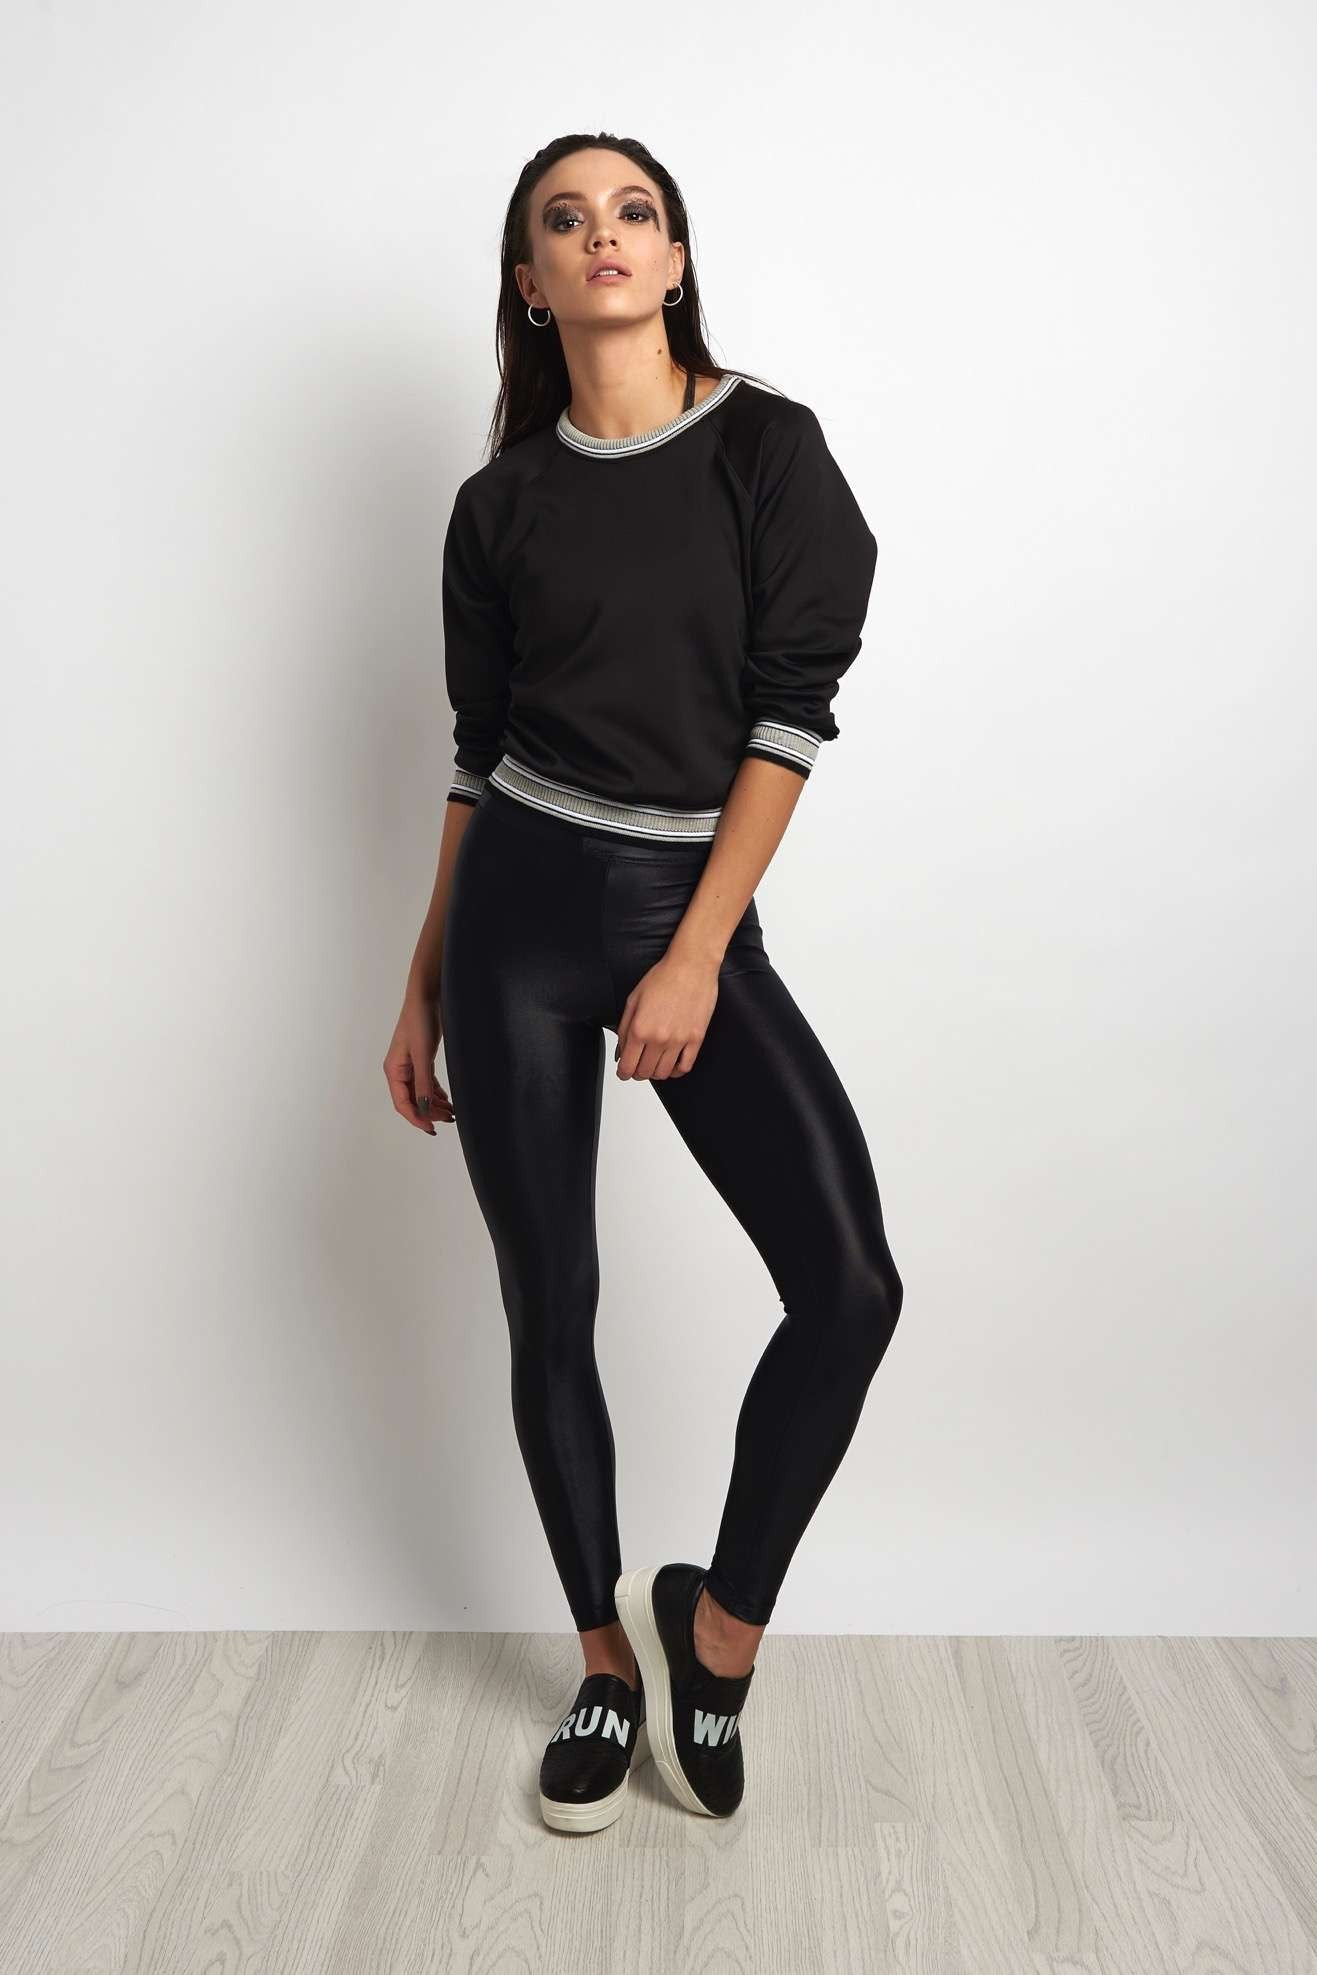 Koral Club Long Sleeve Sweatshirt - Black image 4 - The Sports Edit